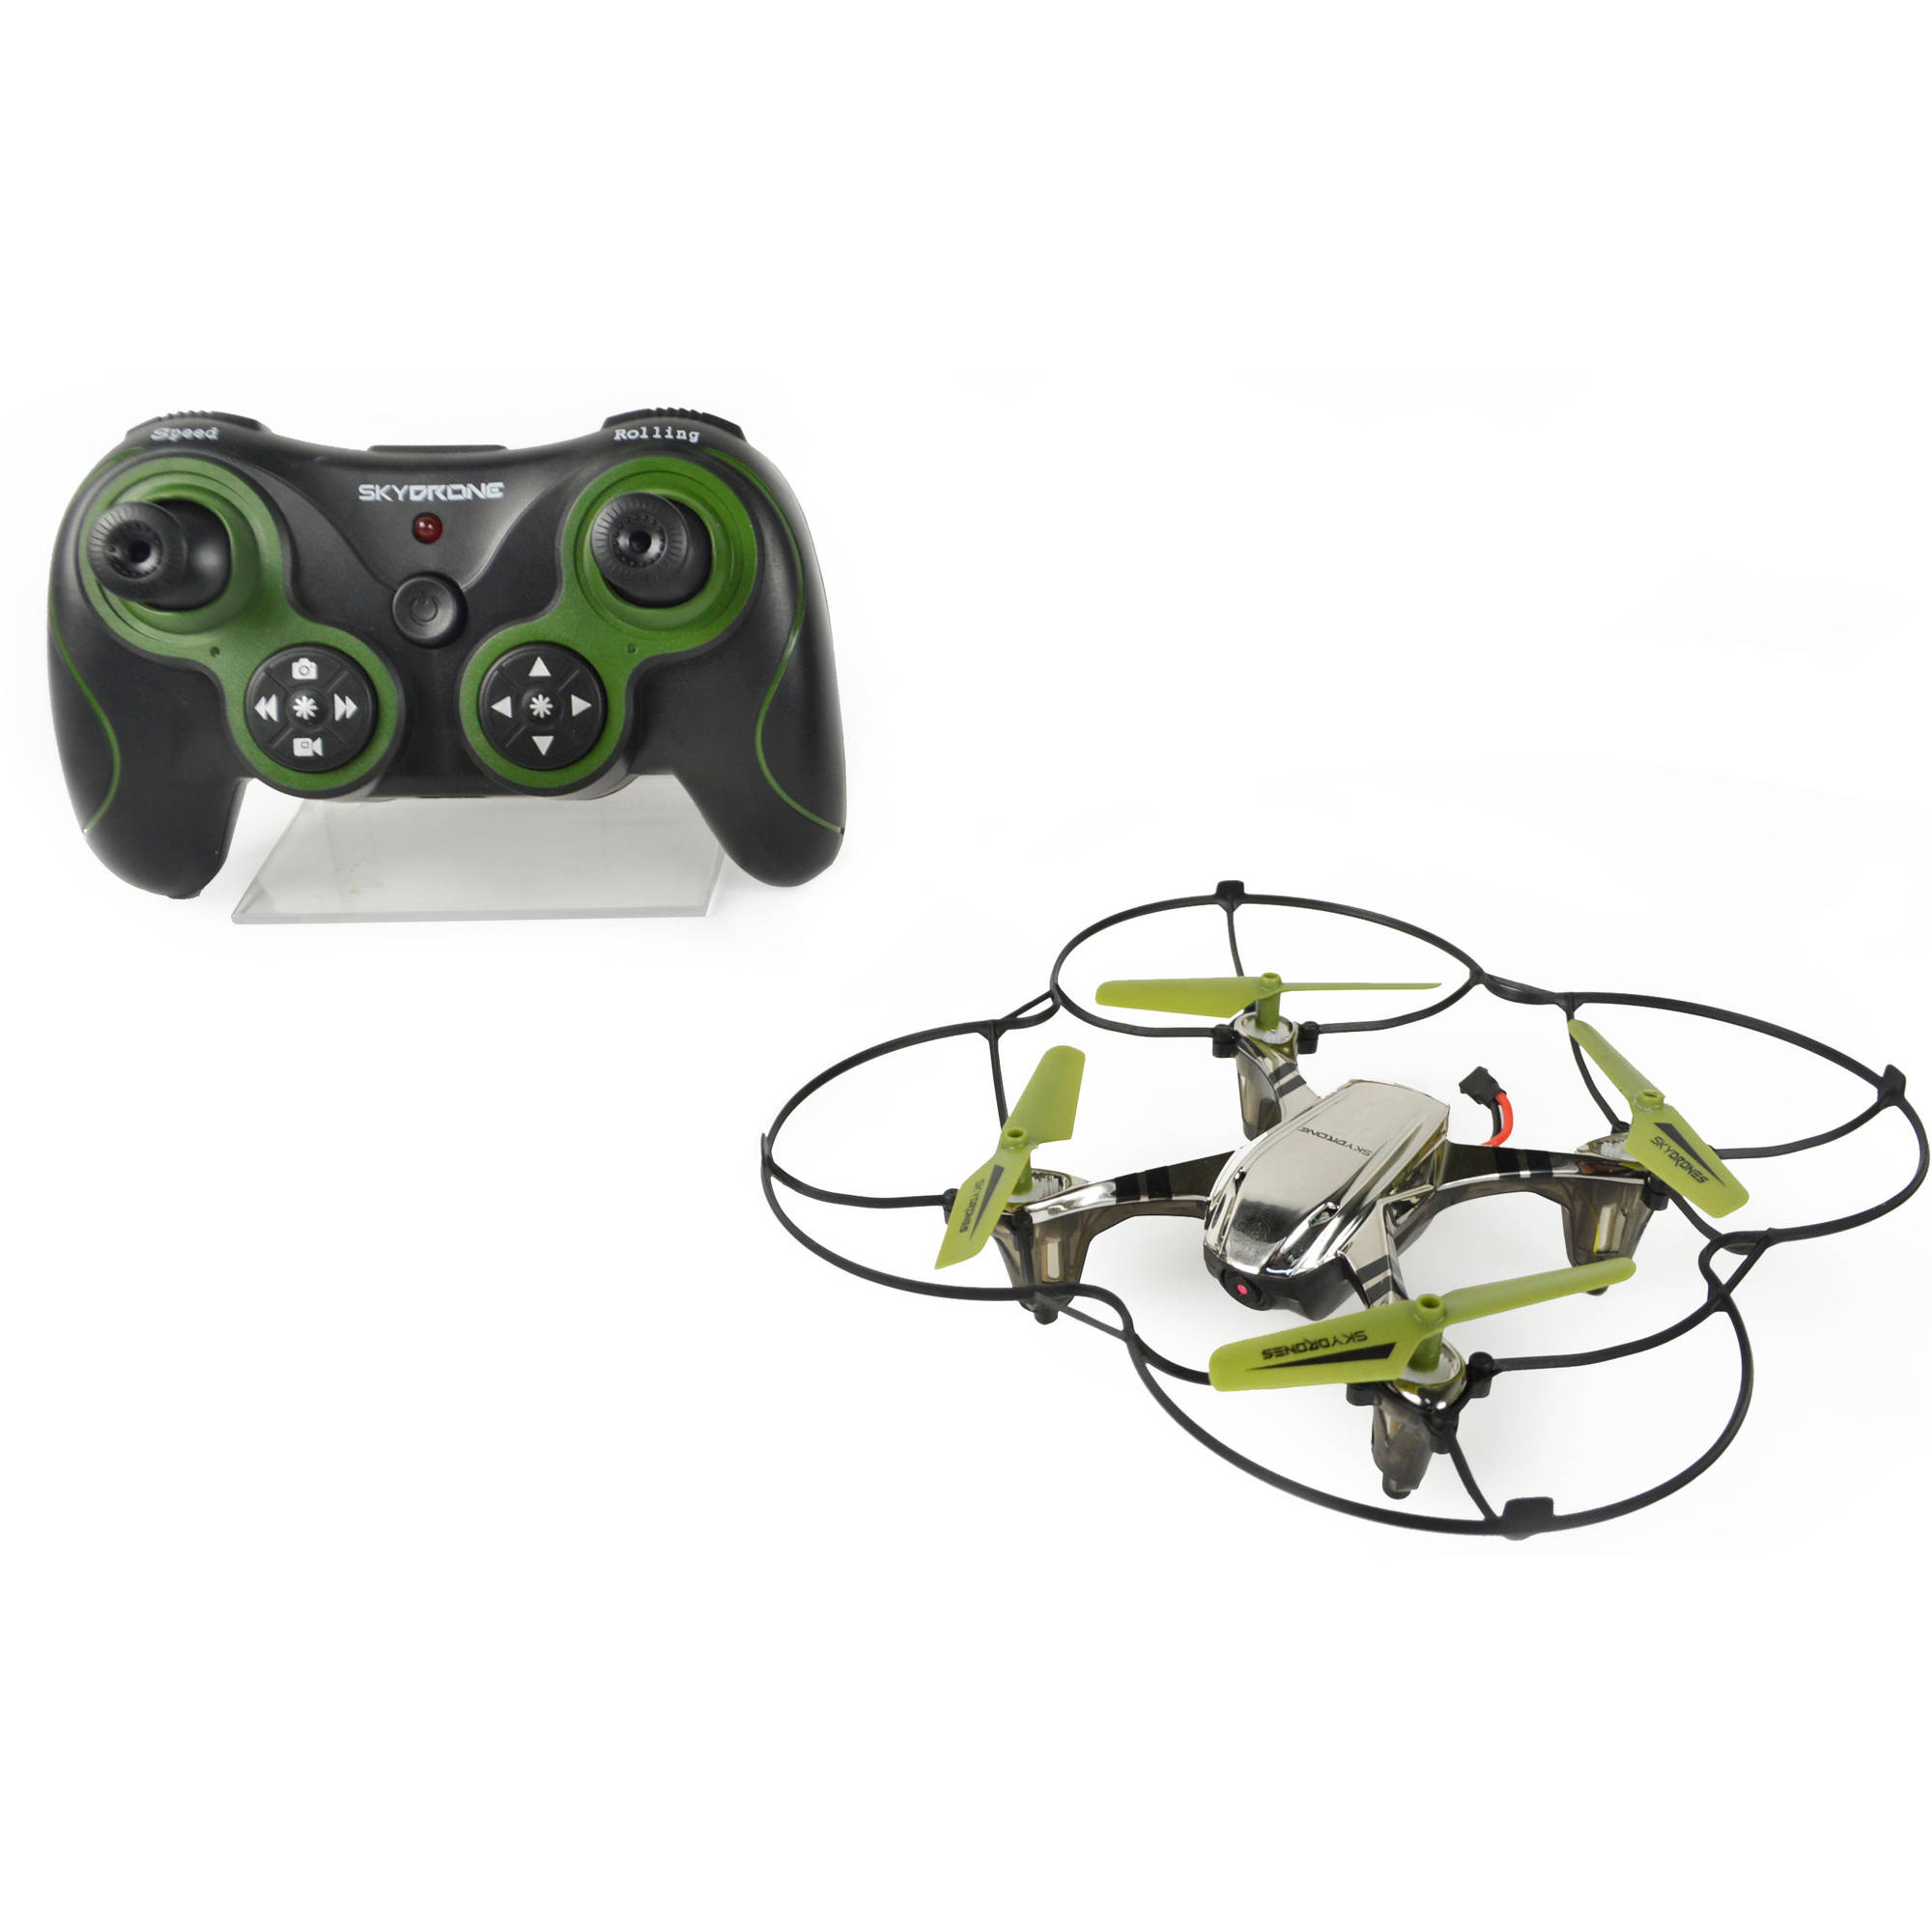 Braha Skydrone 2.4GHz RC Drone